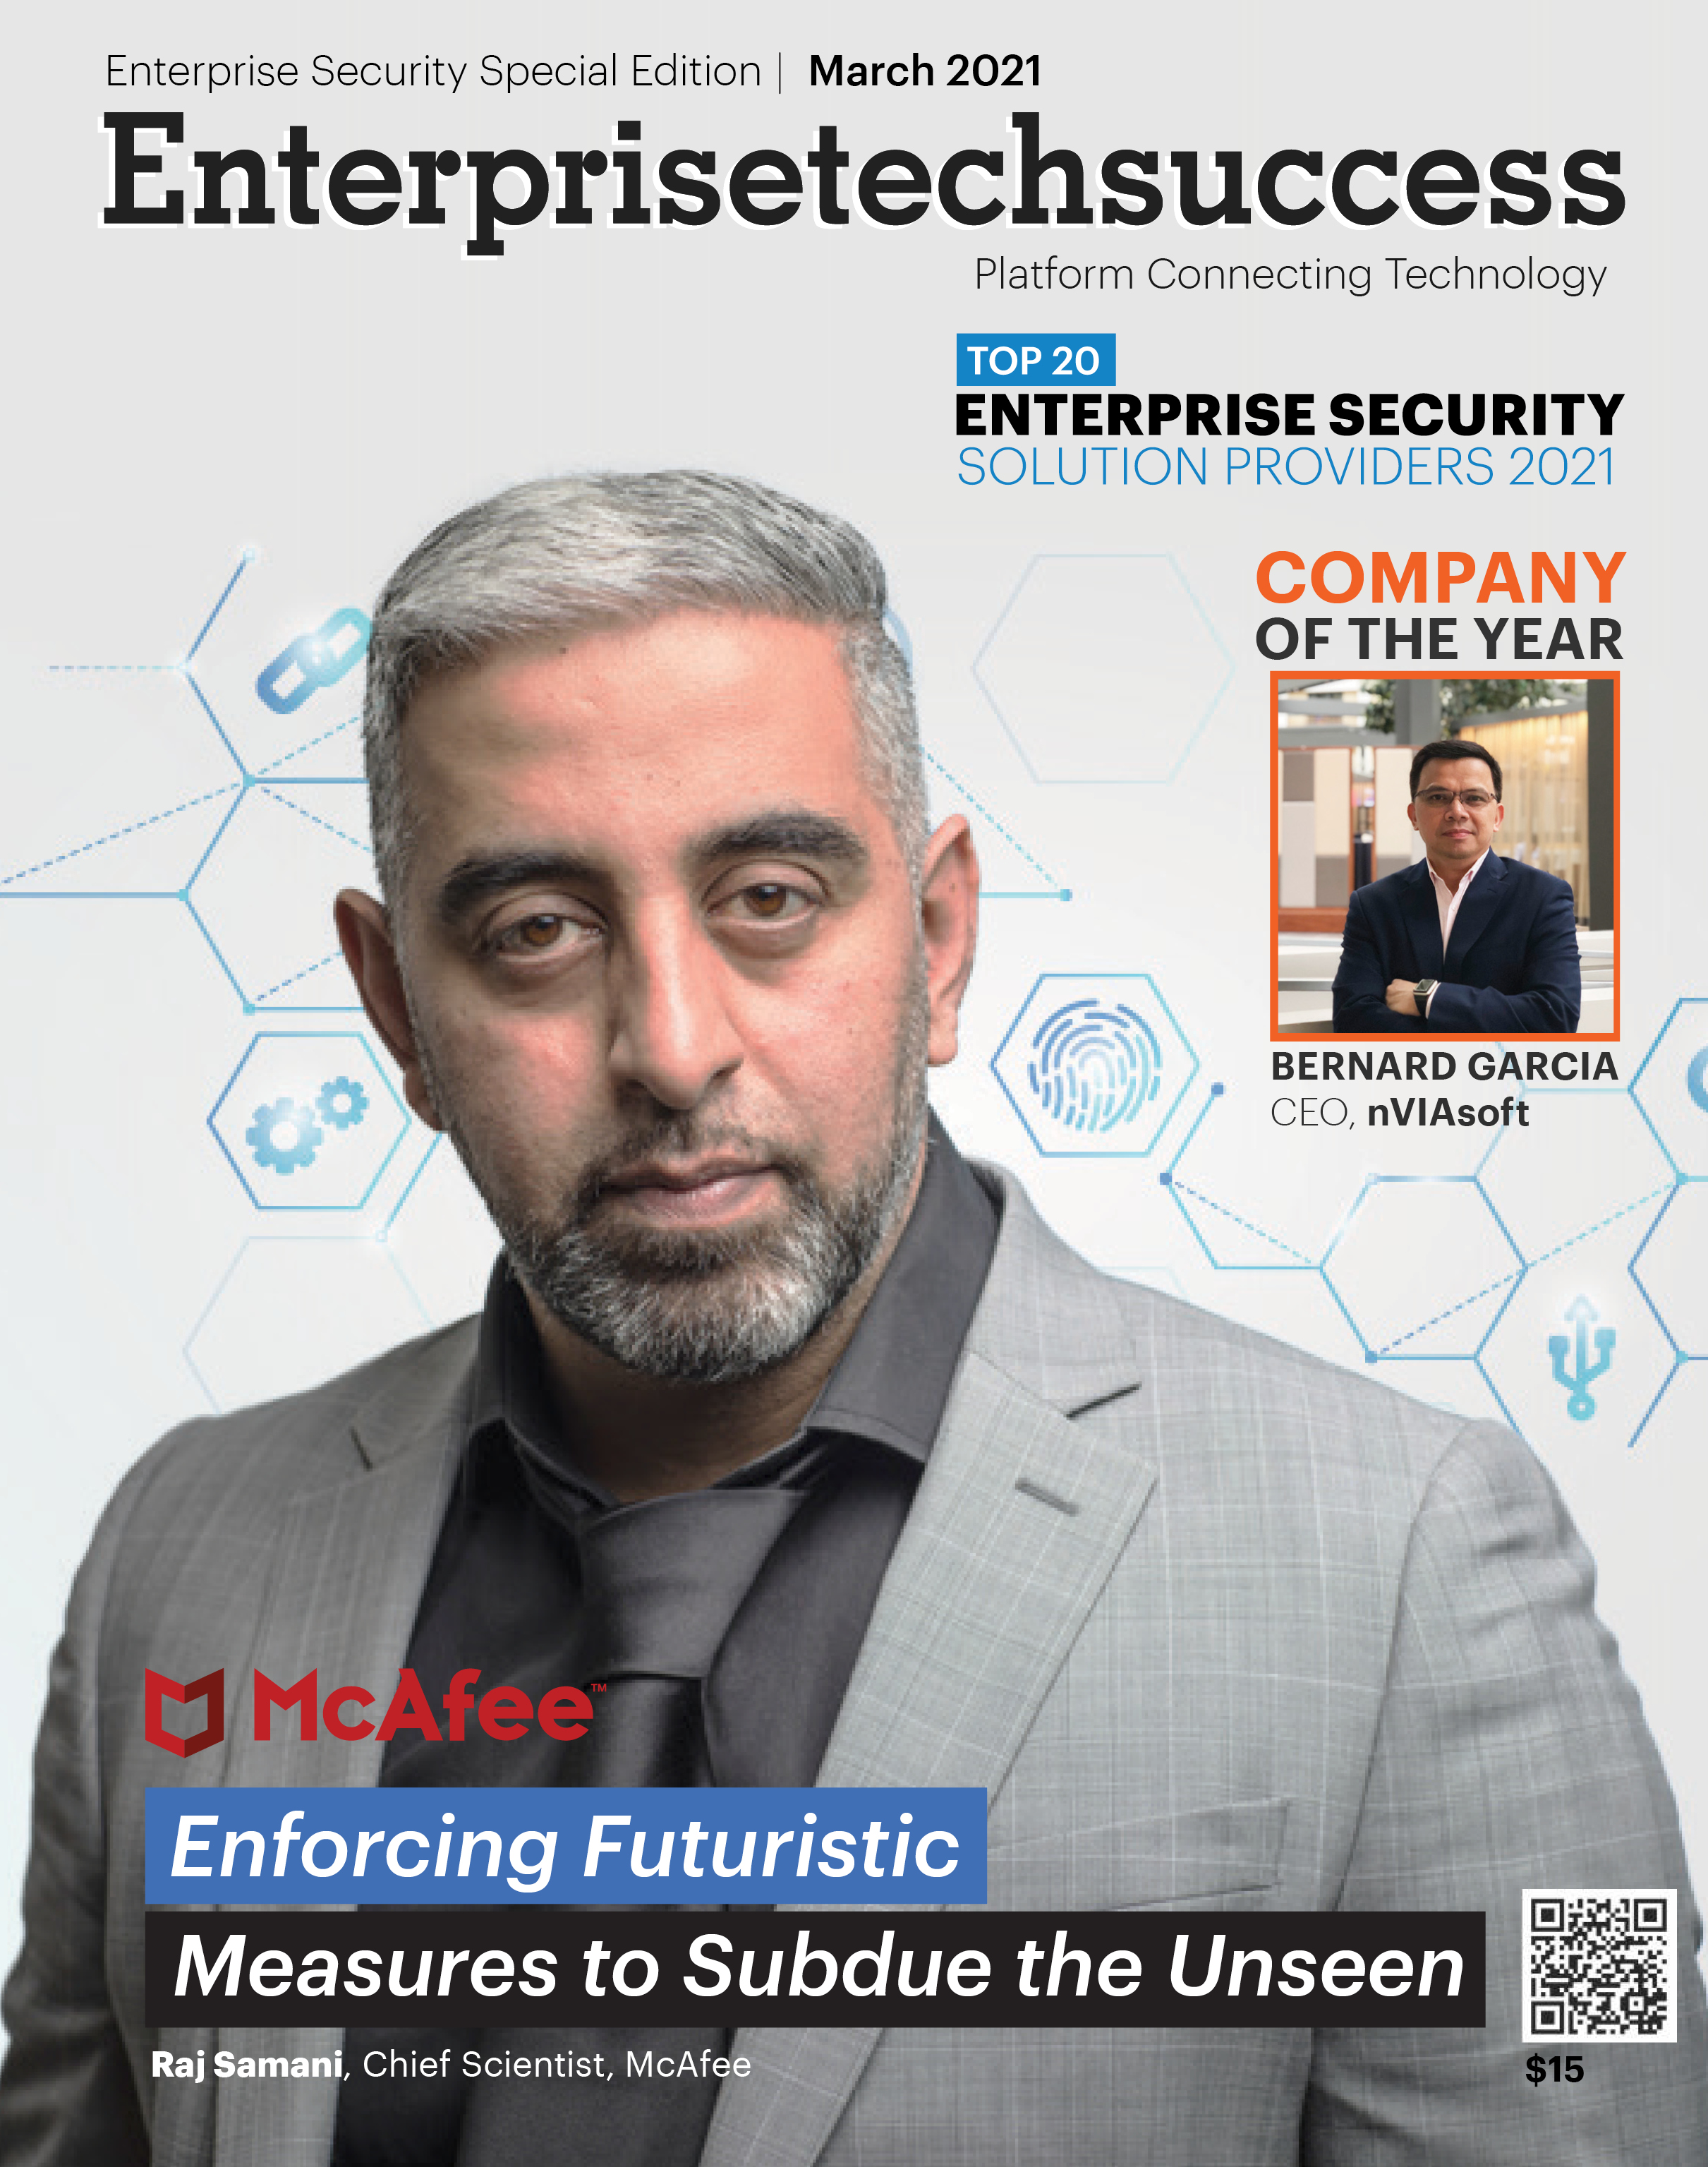 Top 20 Enterprise Security Solution Providers 2021